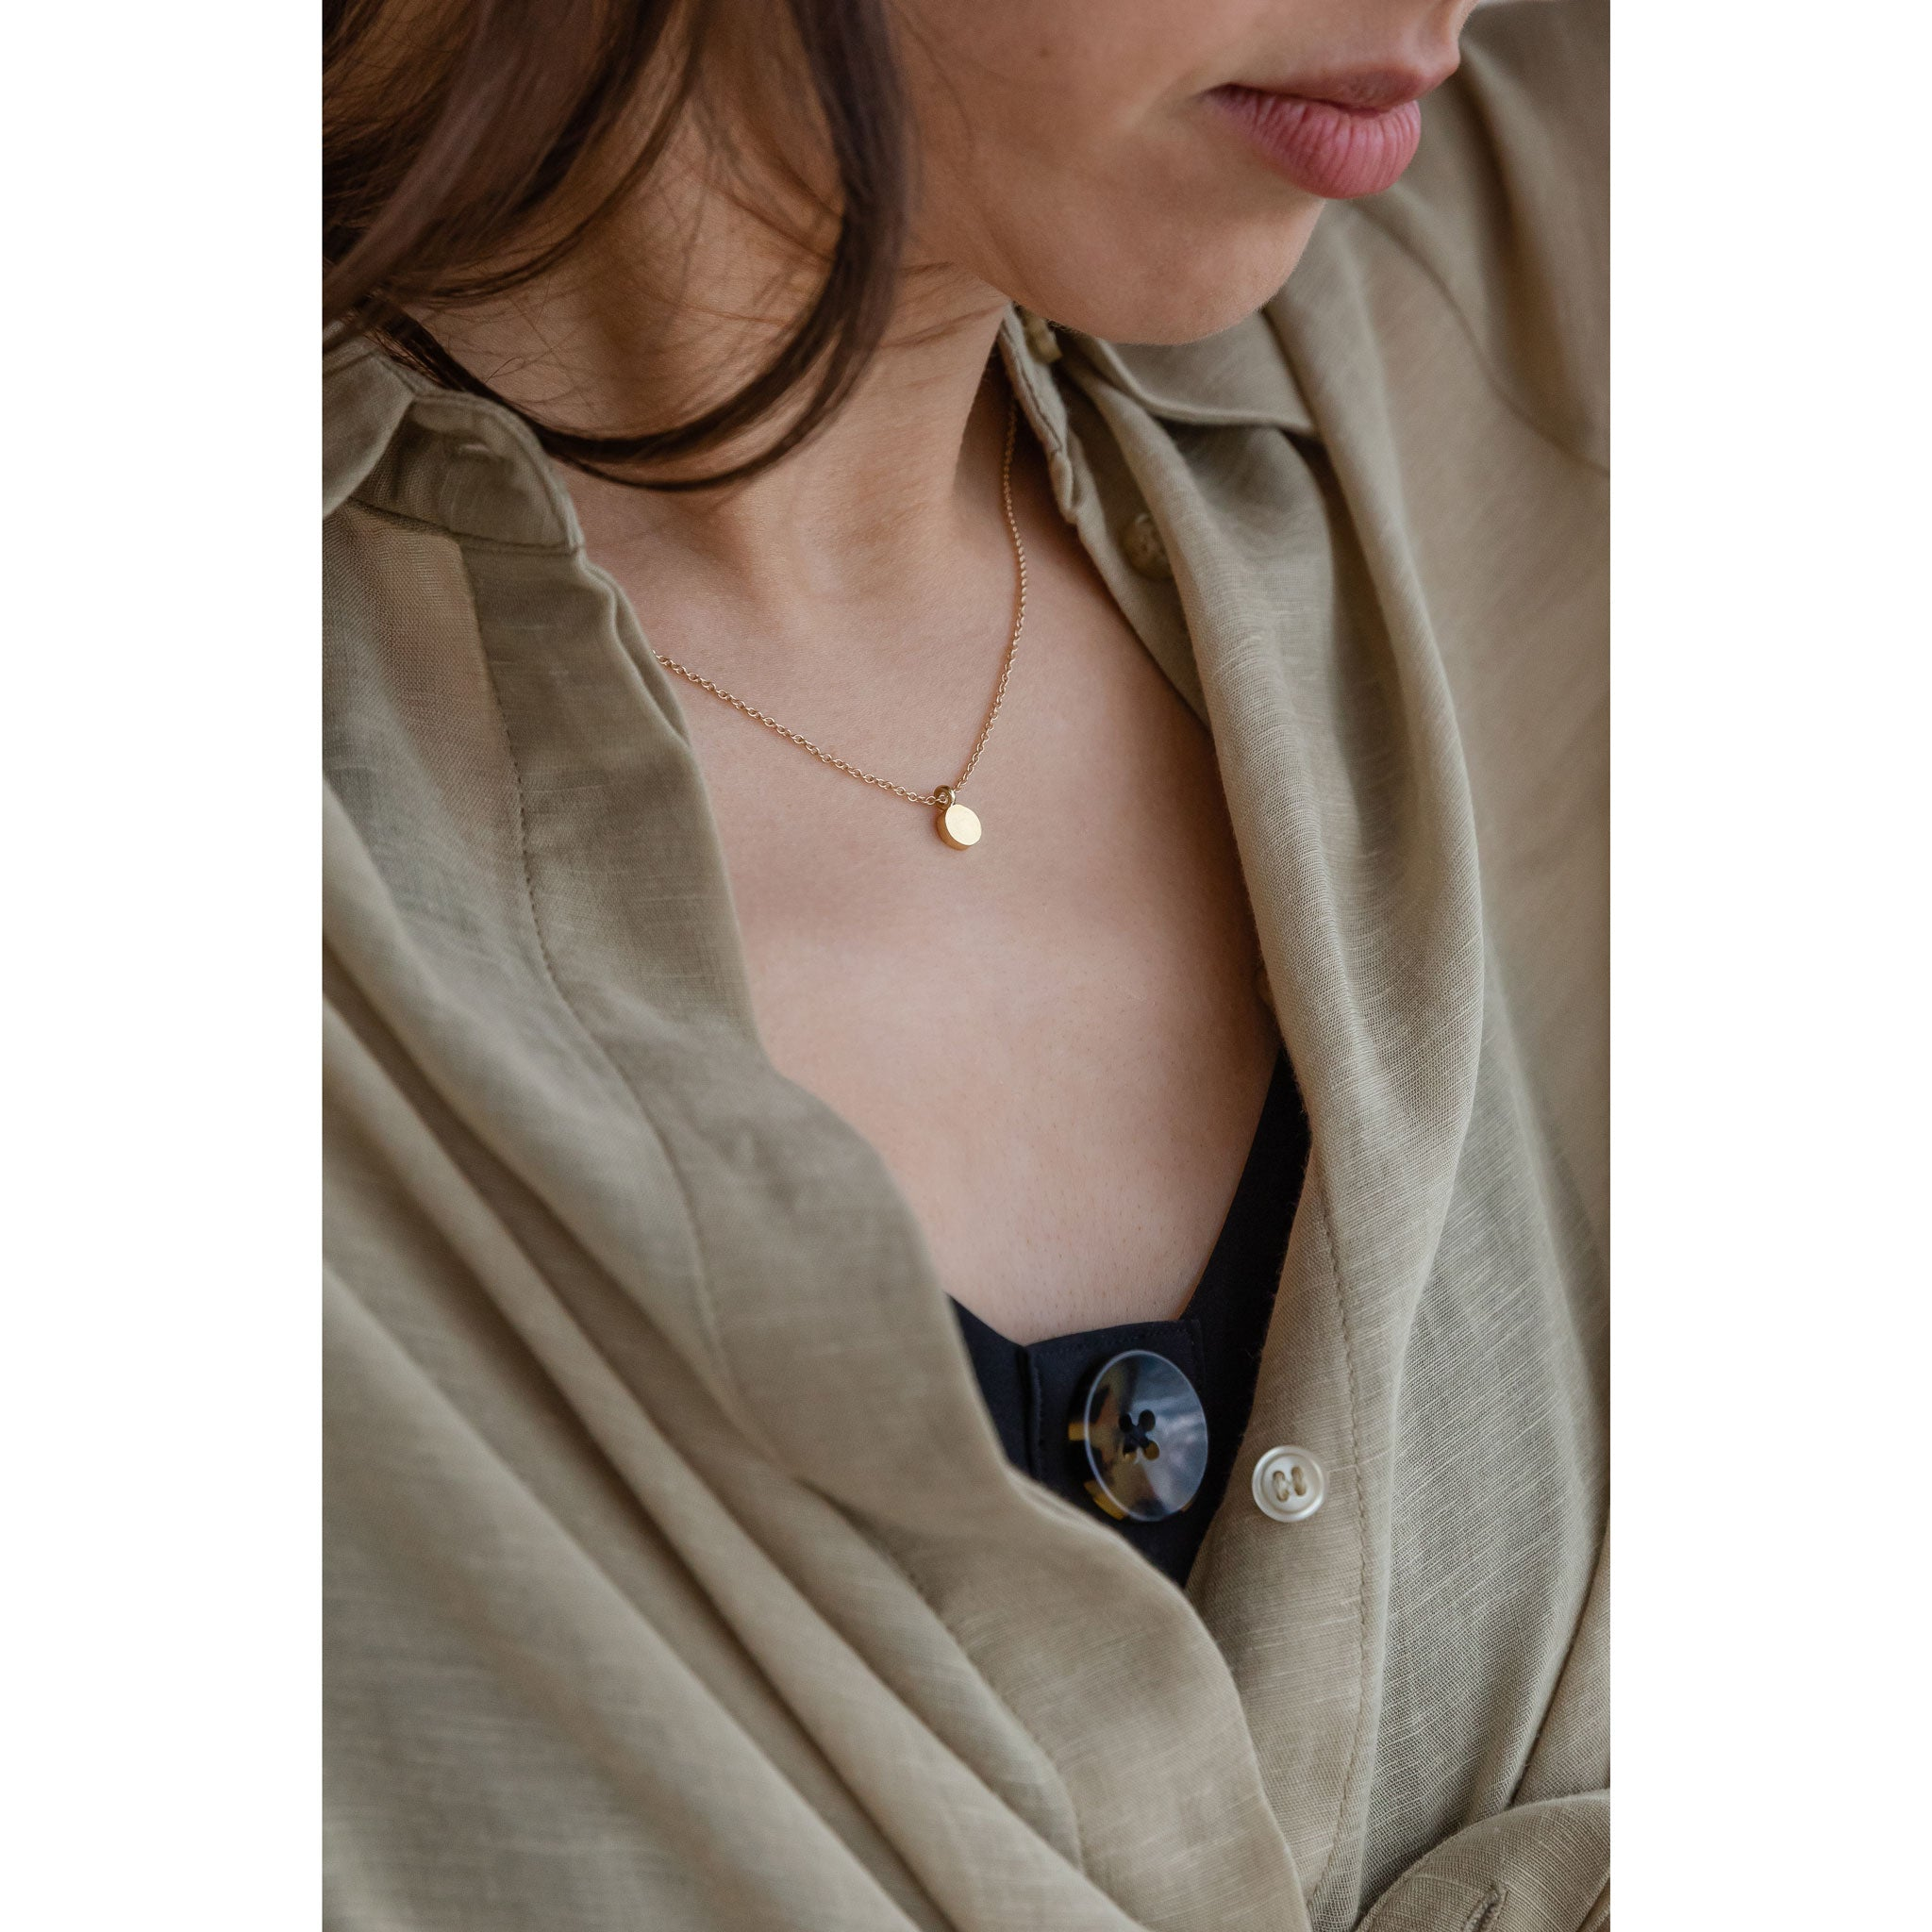 Wanderlust Life Ethically Handmade jewellery made in the UK. Minimalist gold and fine cord jewellery. petite solar pendant necklace